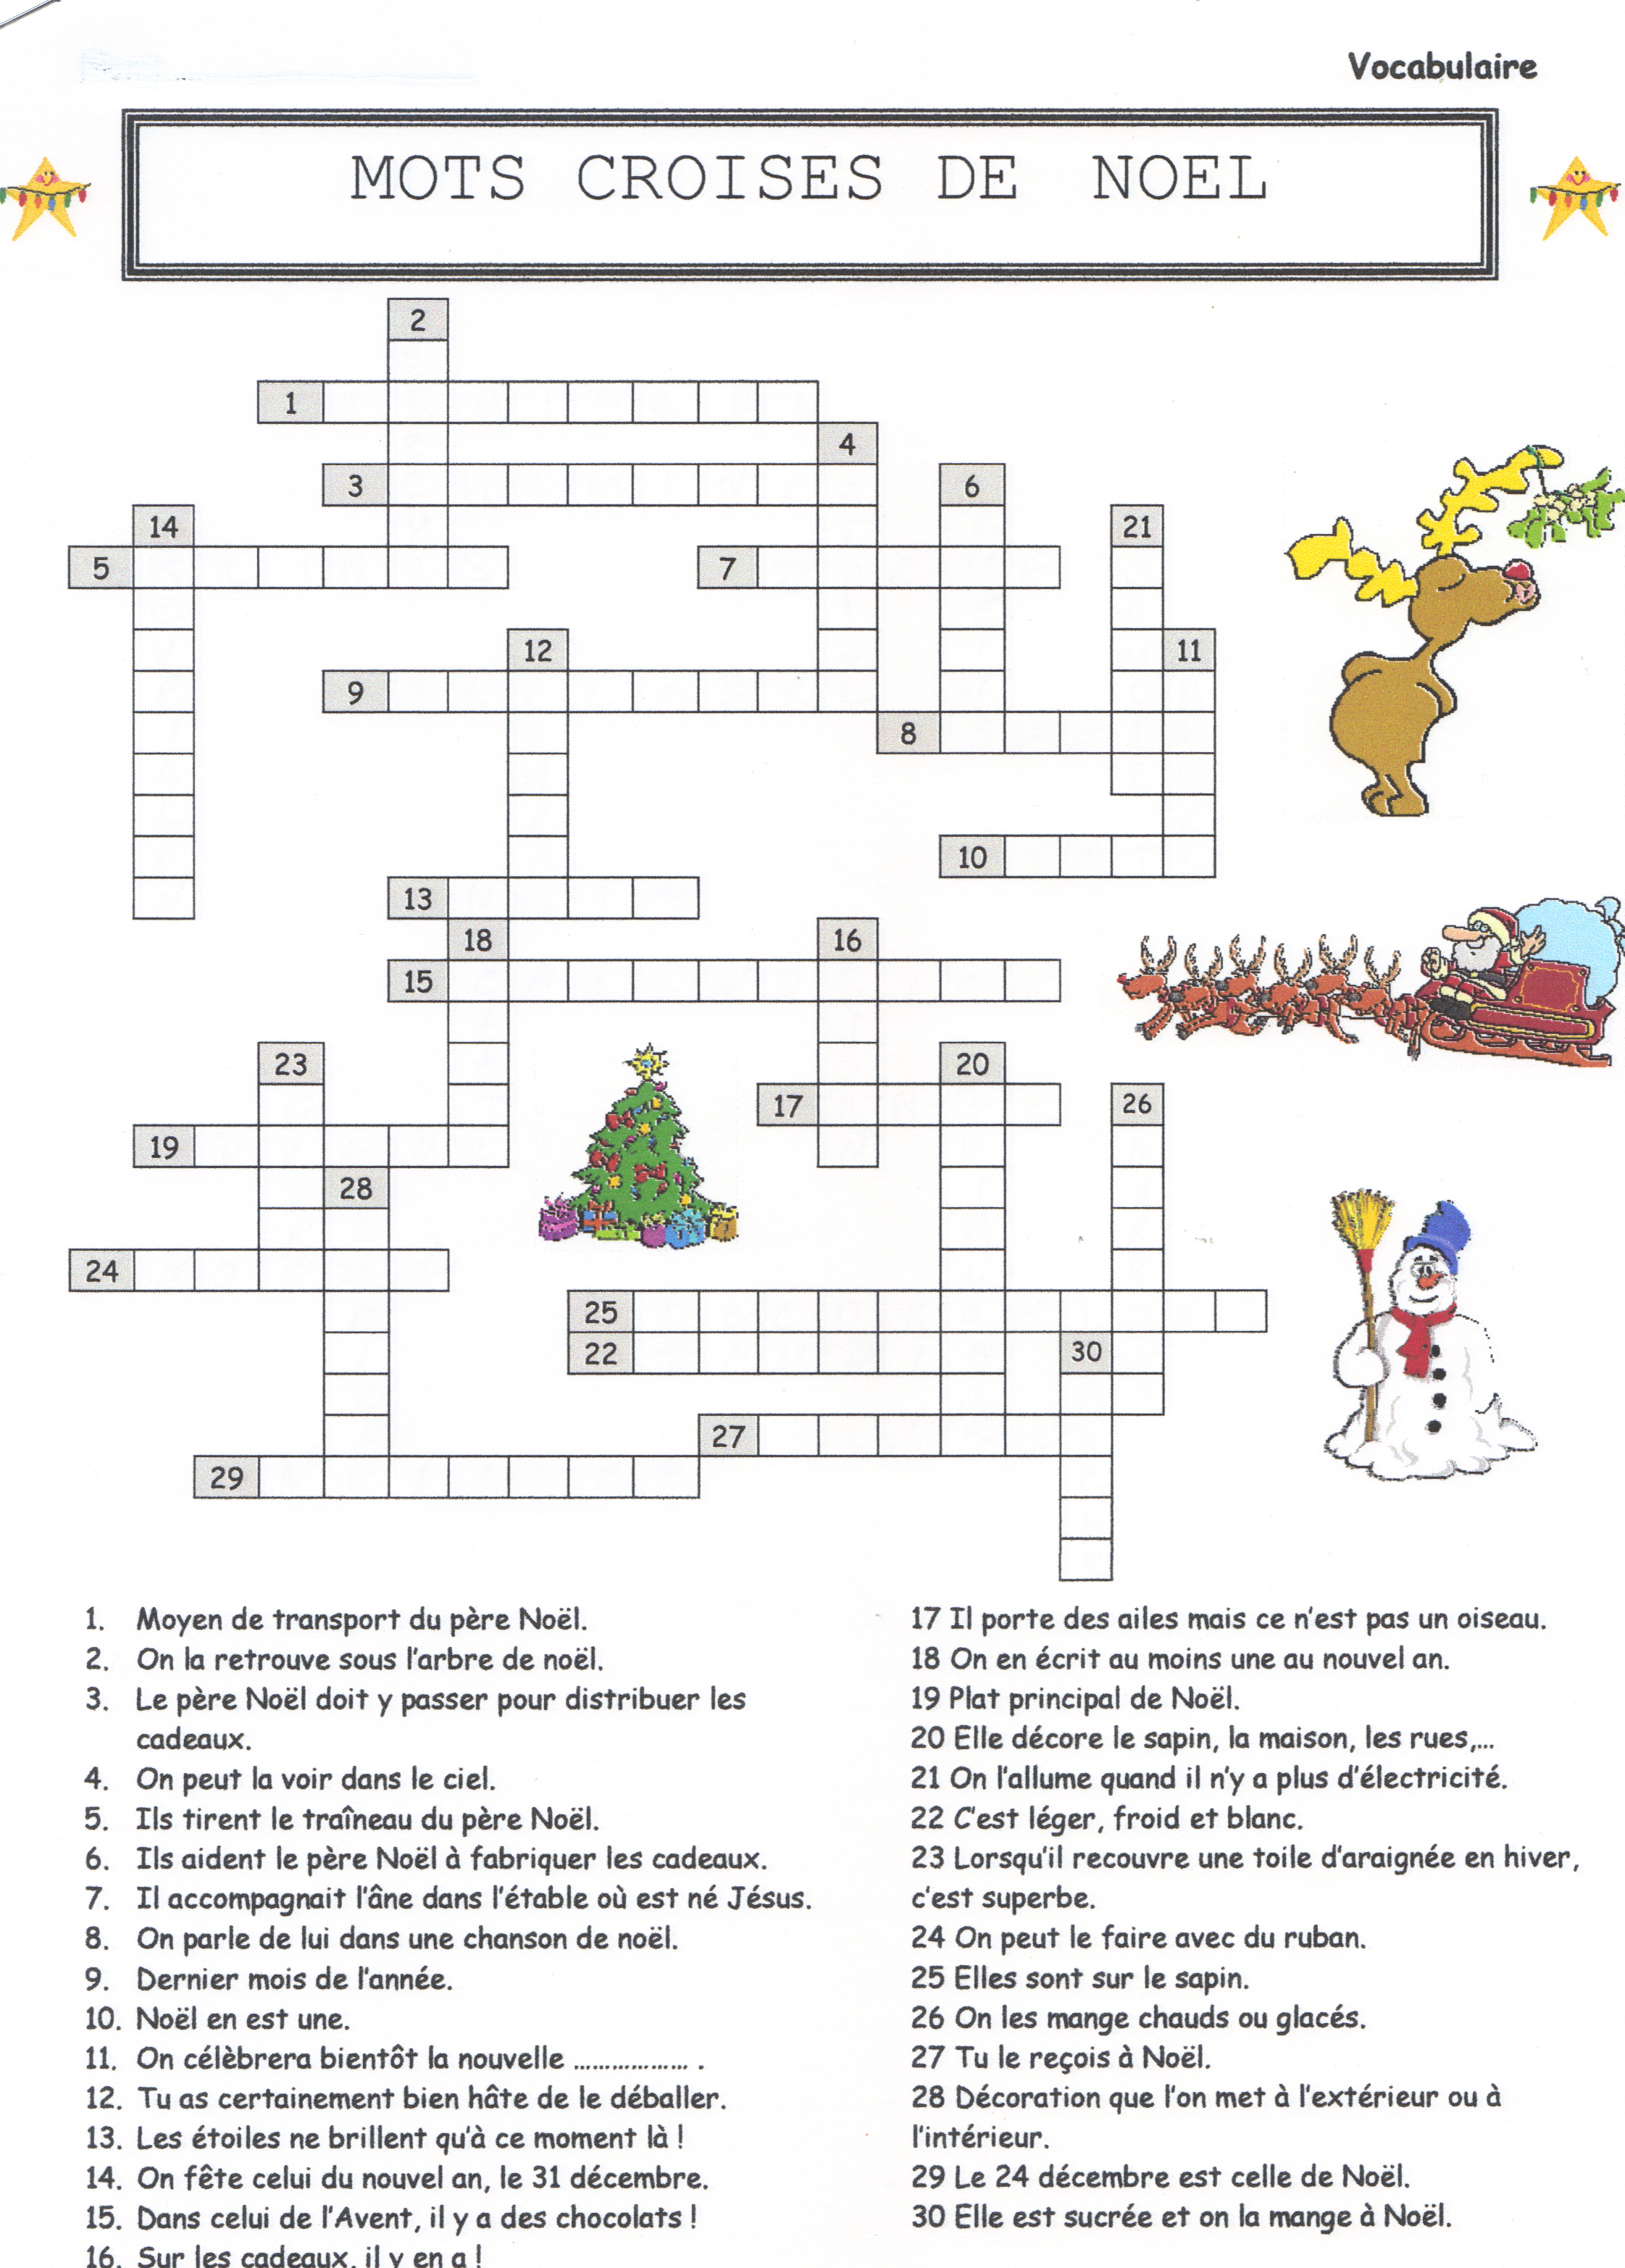 Mots croises de noel christmas crossword puzzle 24 7 in france - Mots coupes gratuits 2012 ...